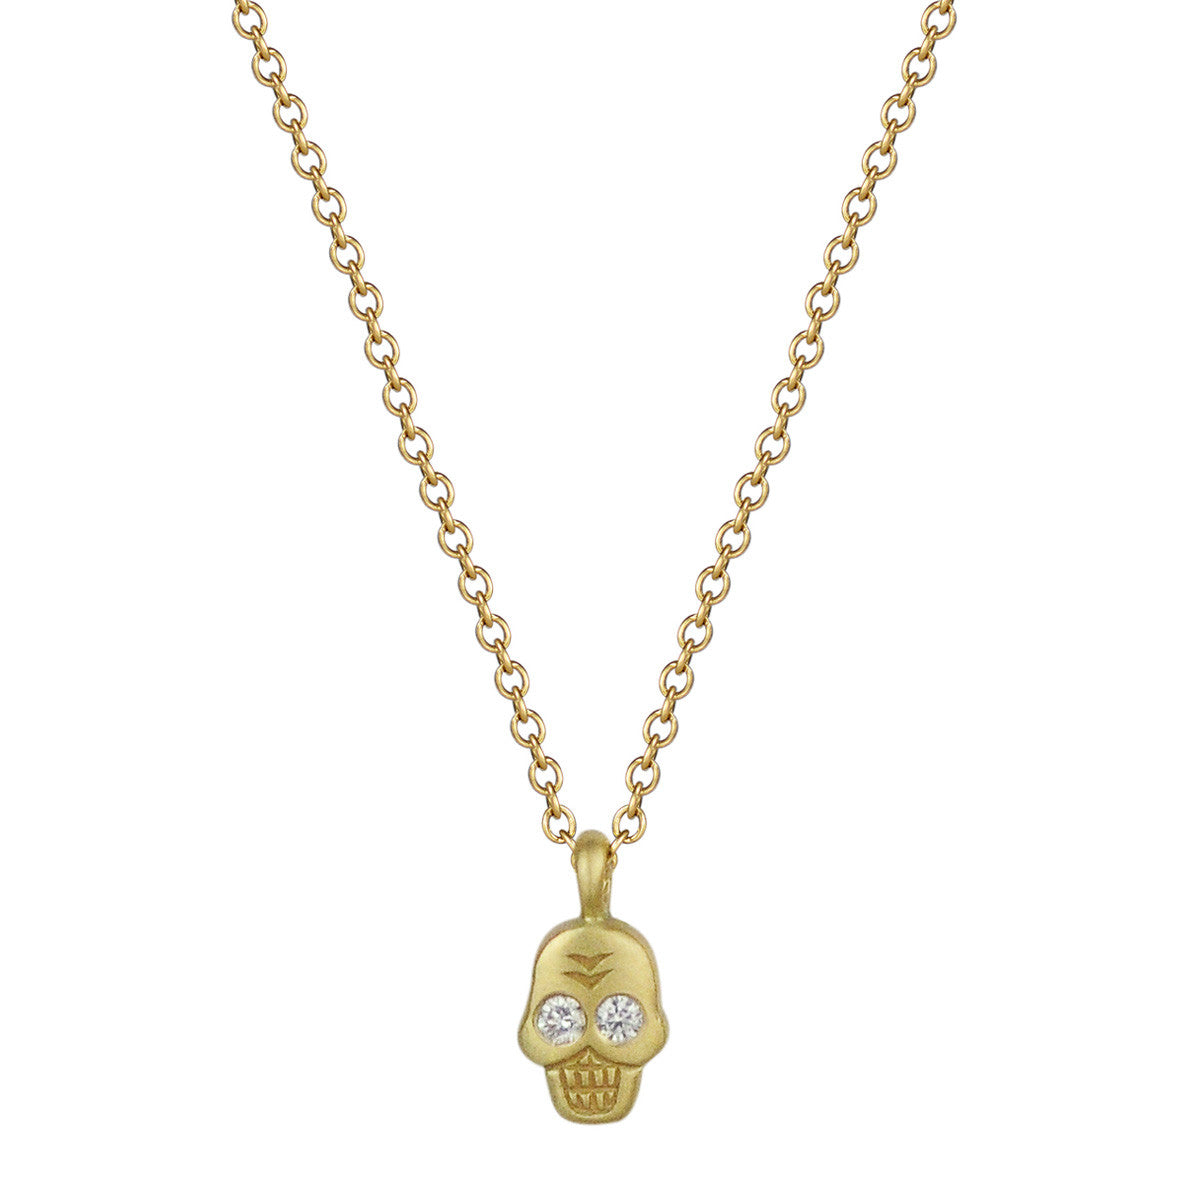 18K Gold Mini Skull Pendant with Diamond Eyes